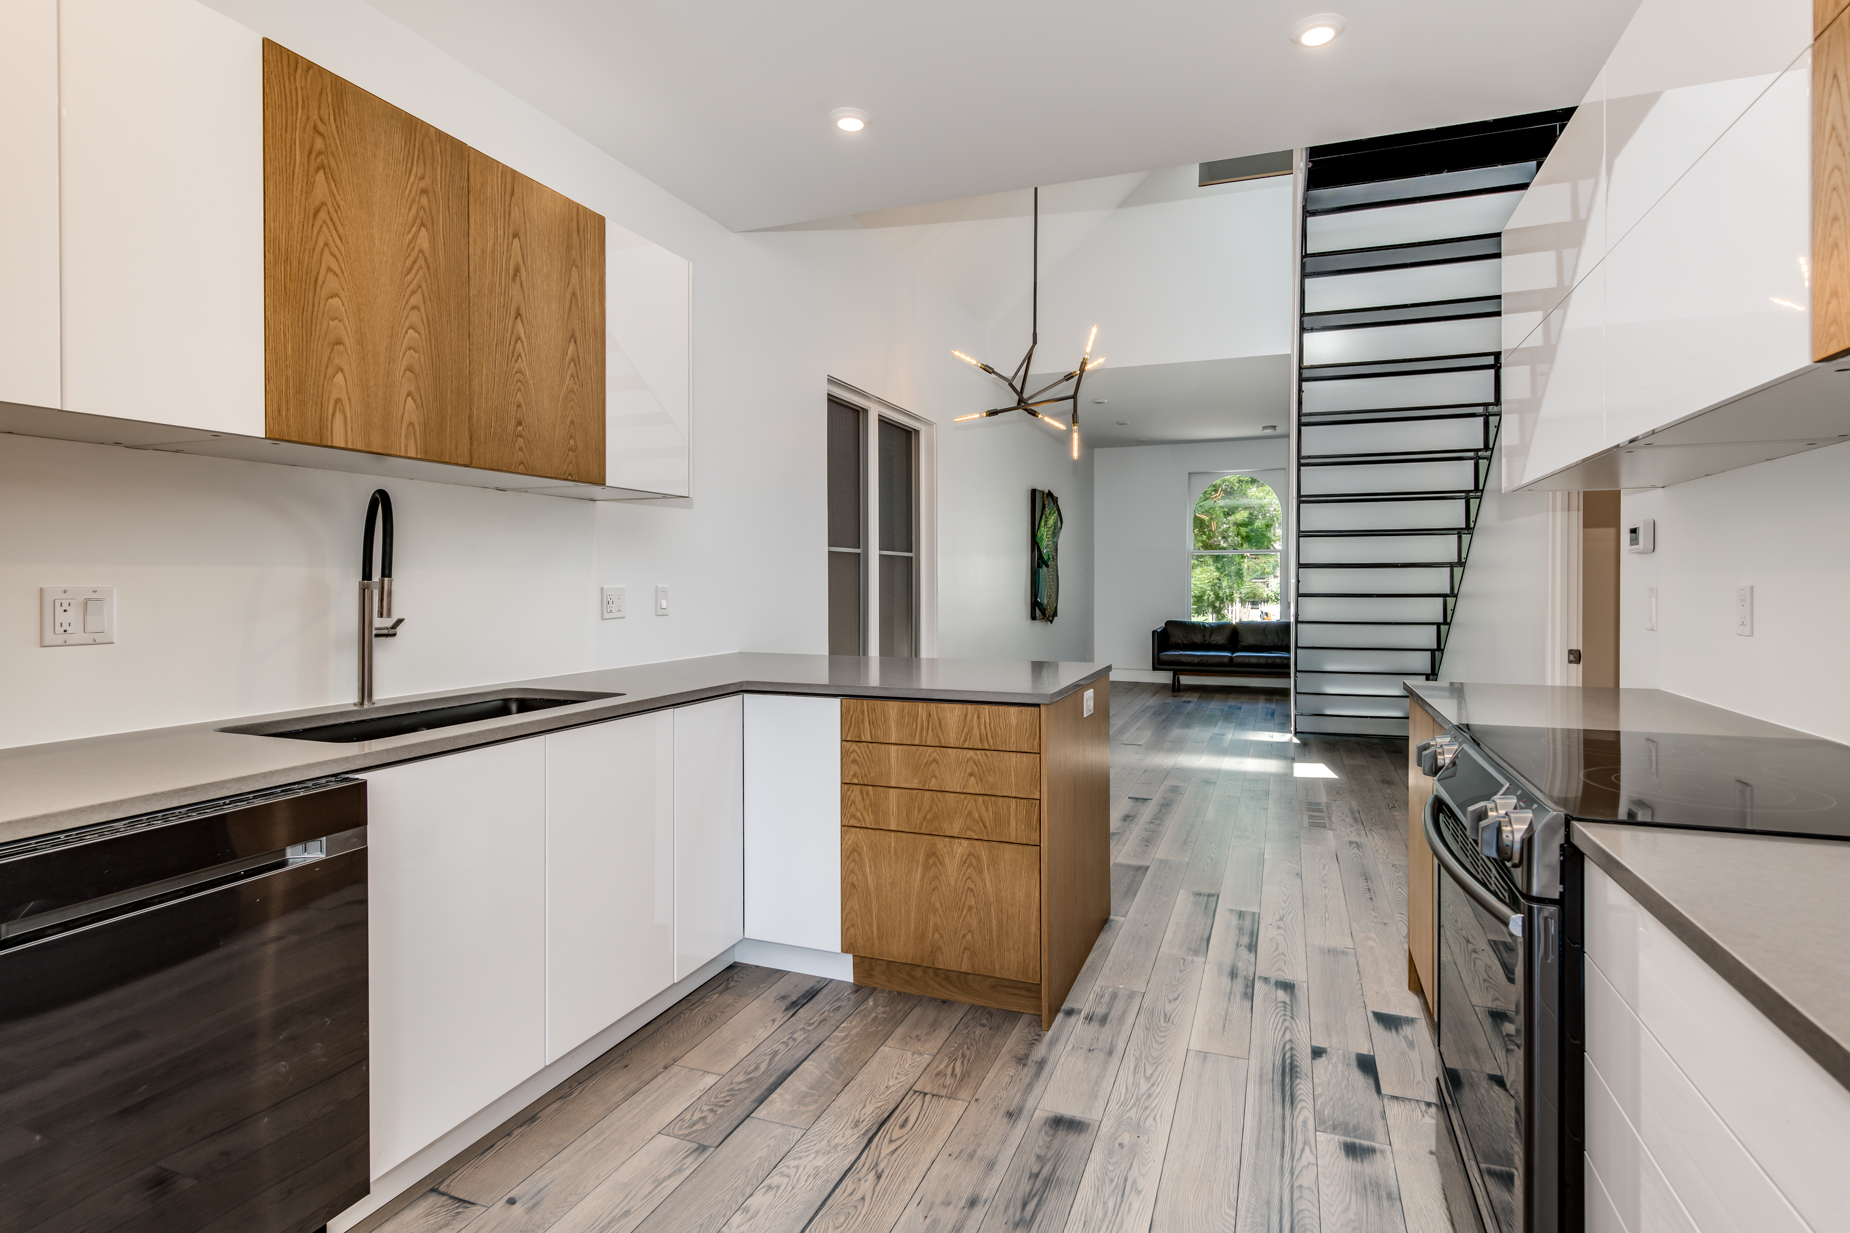 Custom kitchen in natural White Oak fabricated by PAPER AIRPLANE. Staircase utilizes eco-resin risers engineered by 3Form.